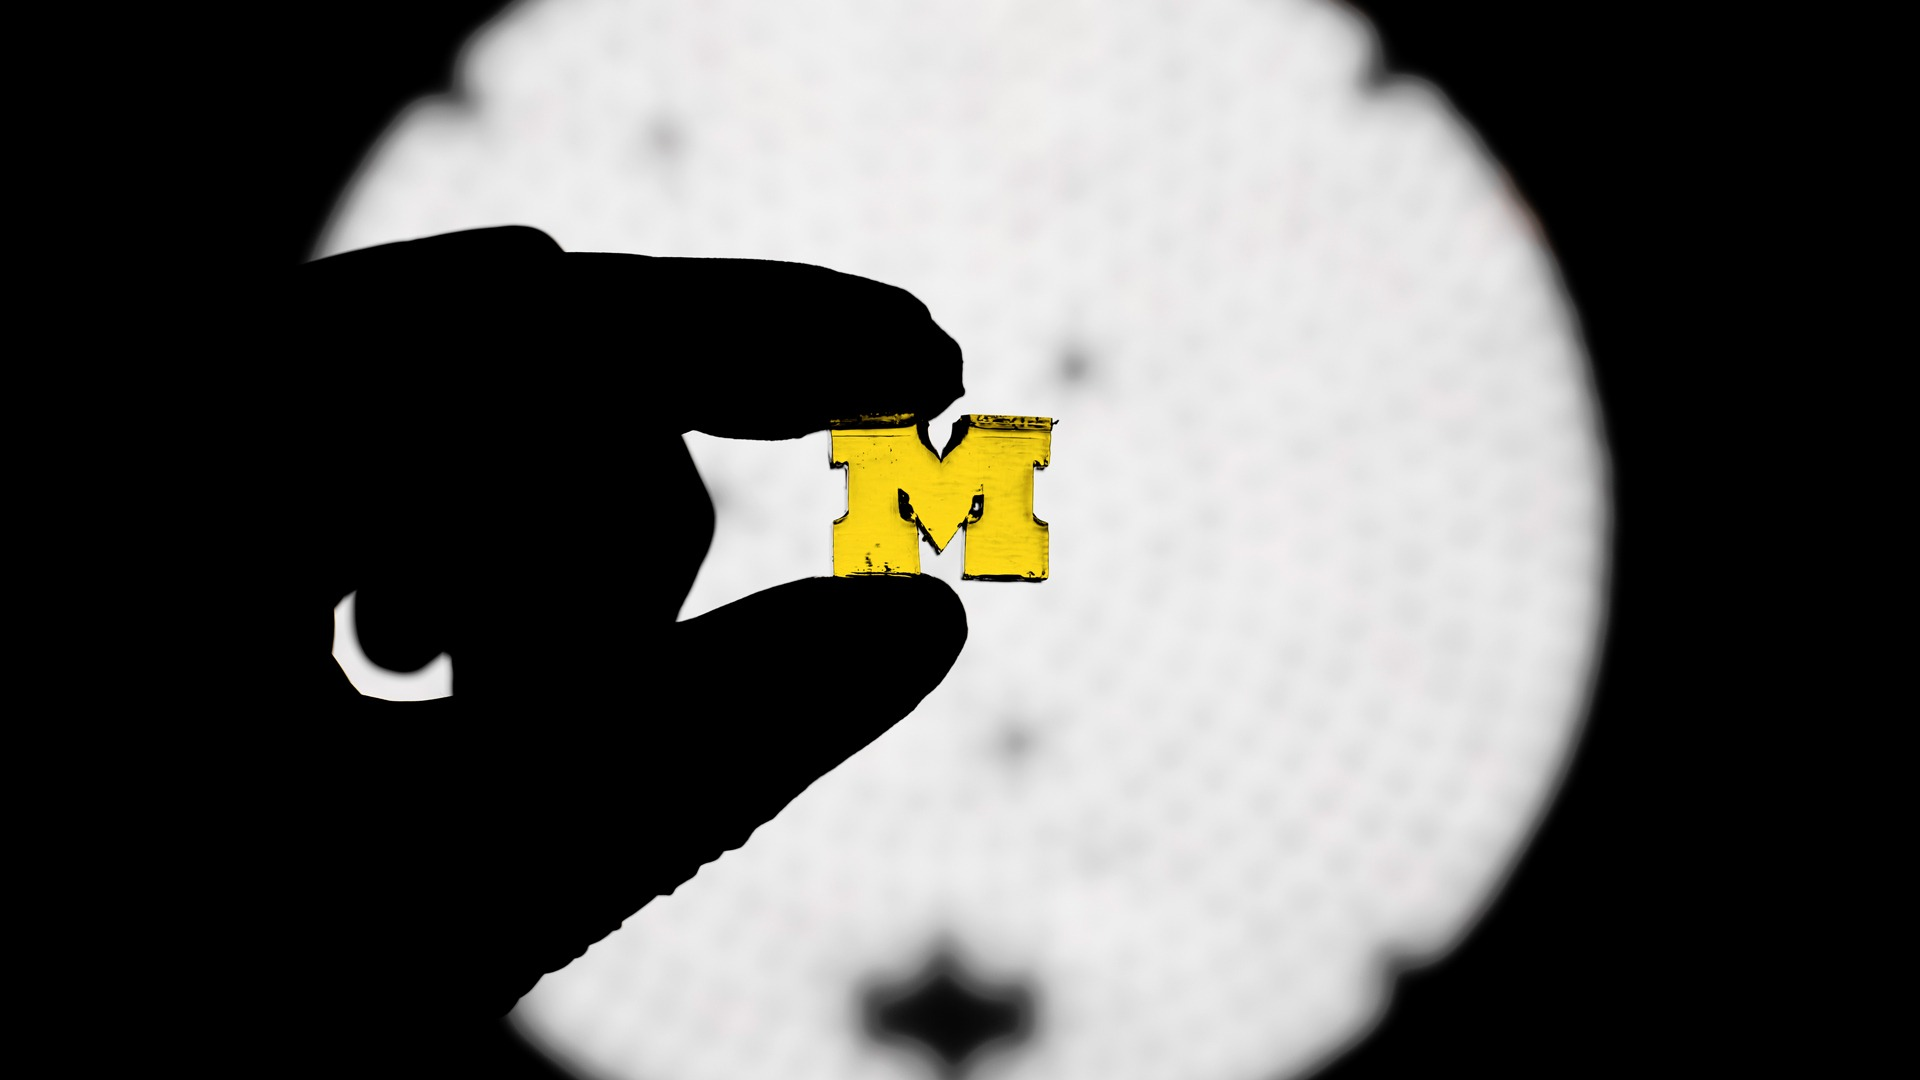 dual light photopolymer 3d printing - university of michigan